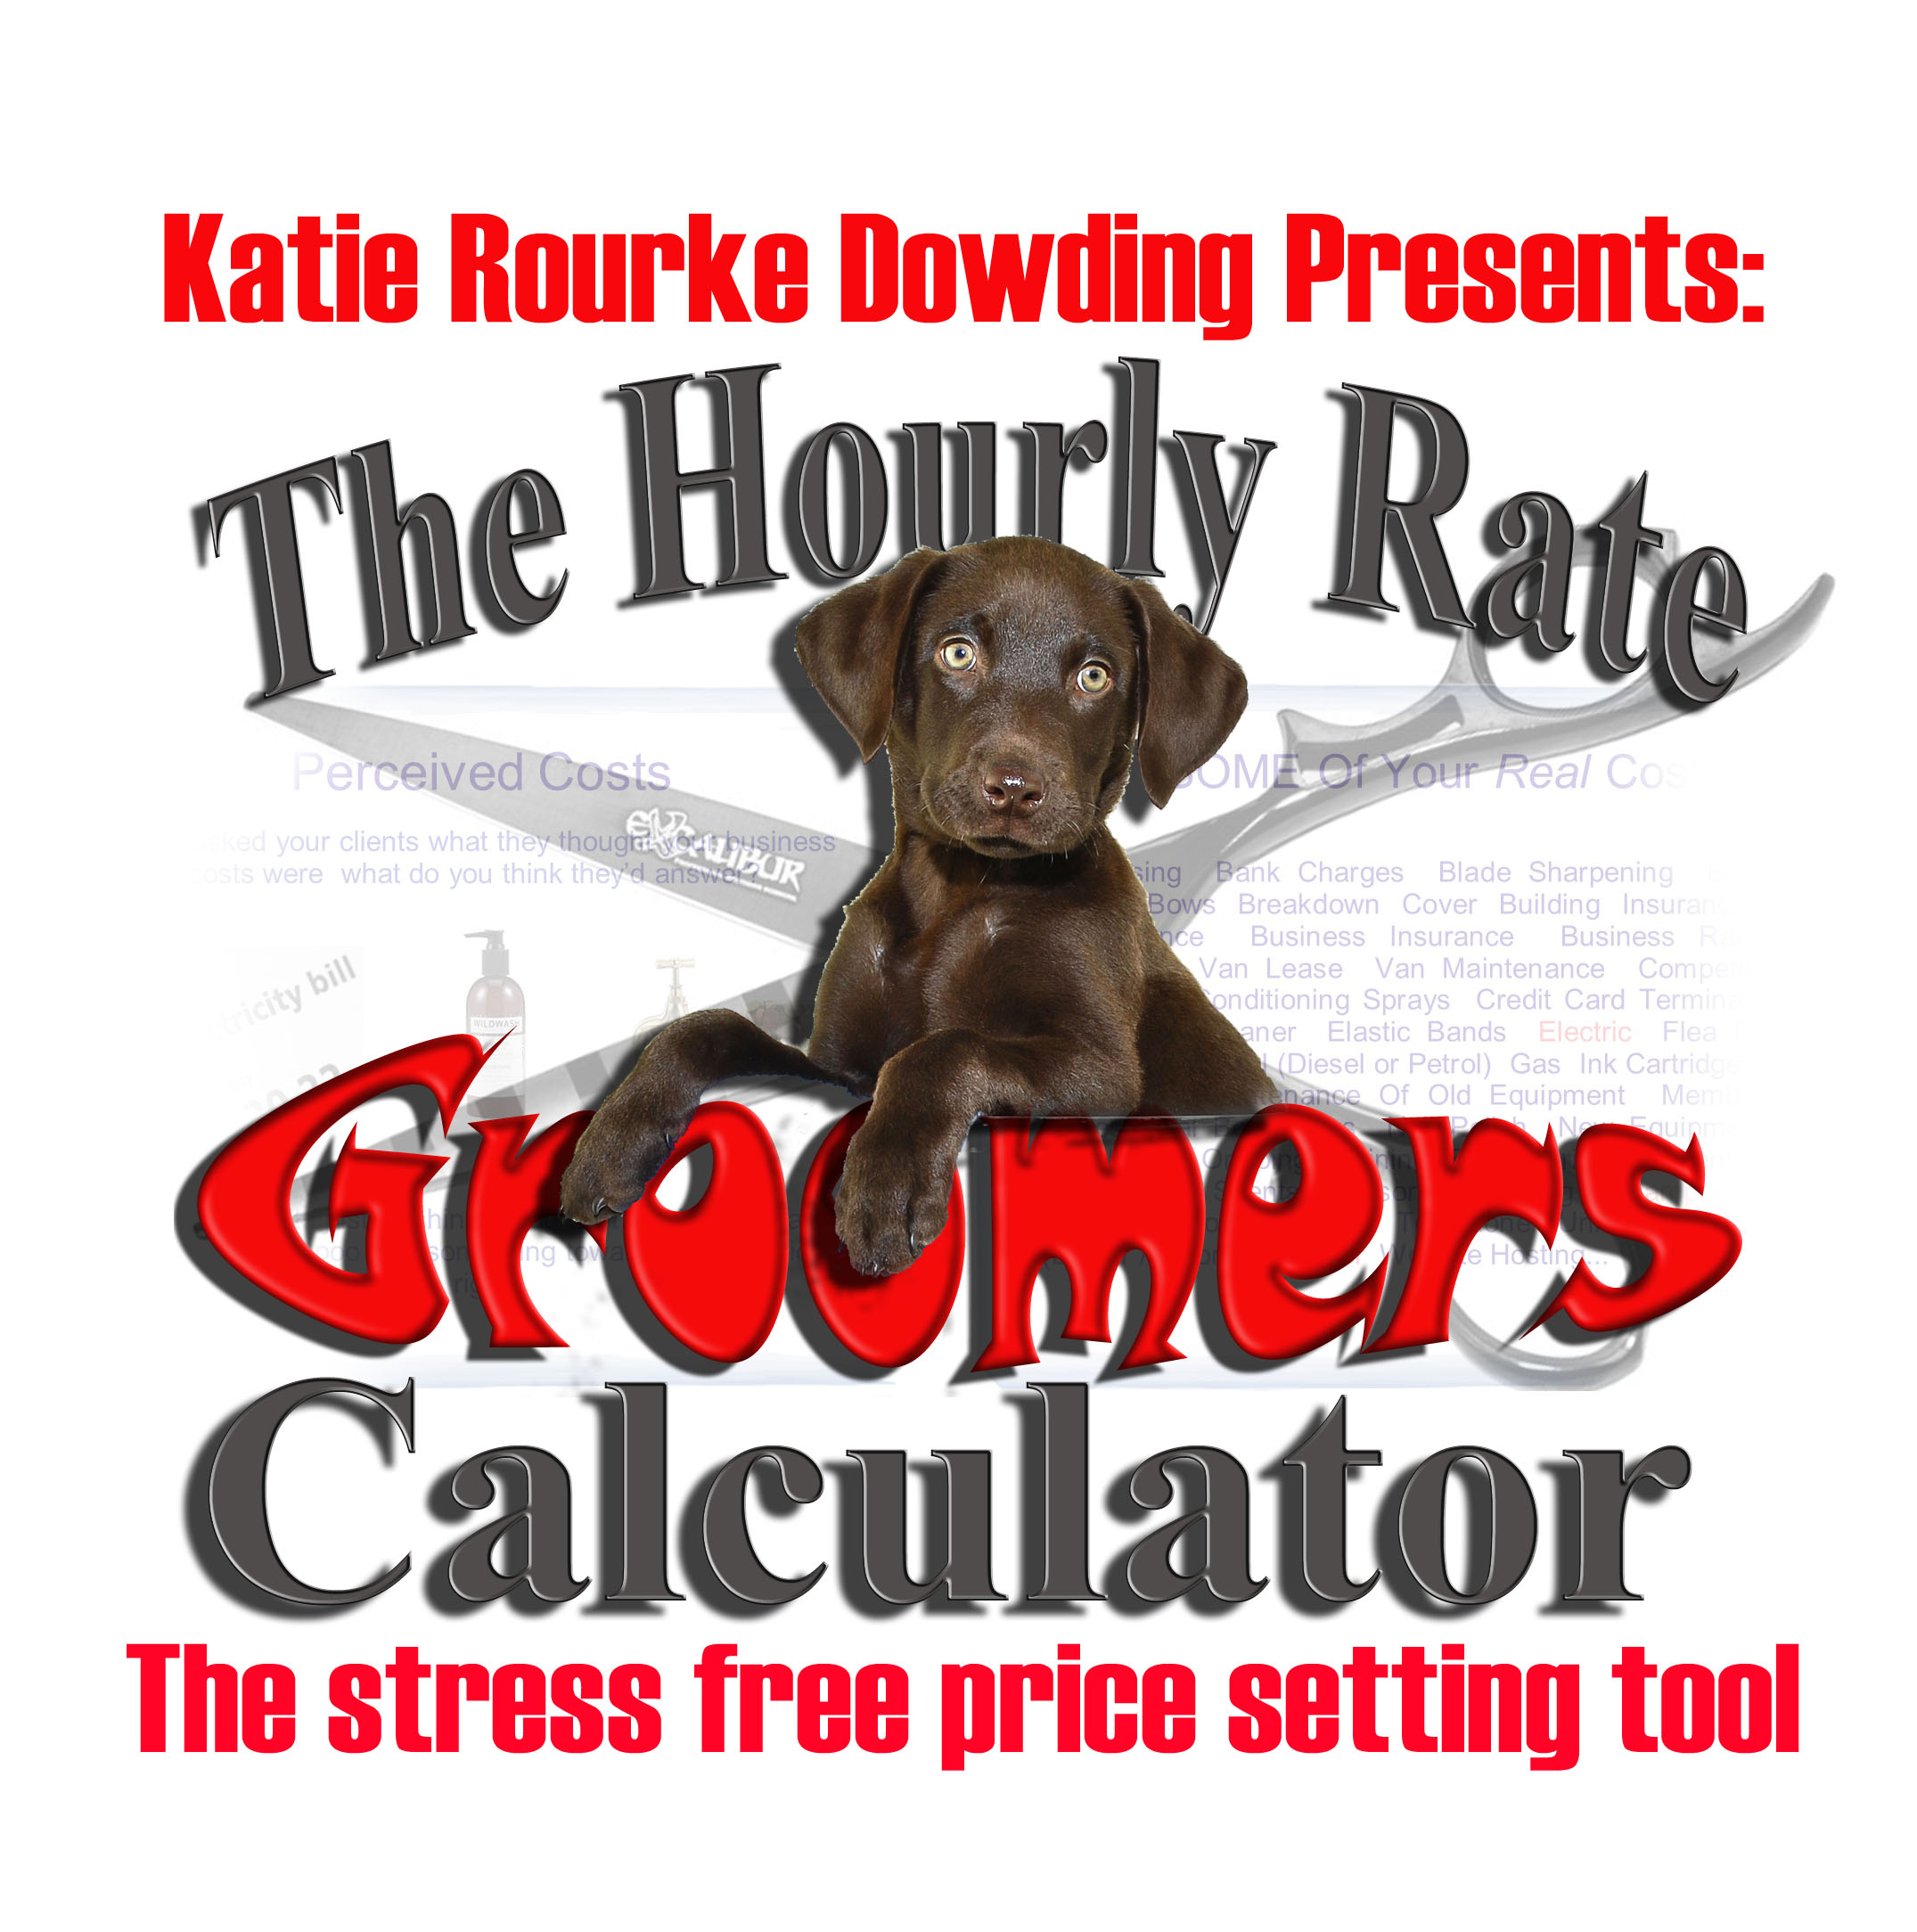 The Hourly Rate Calculator